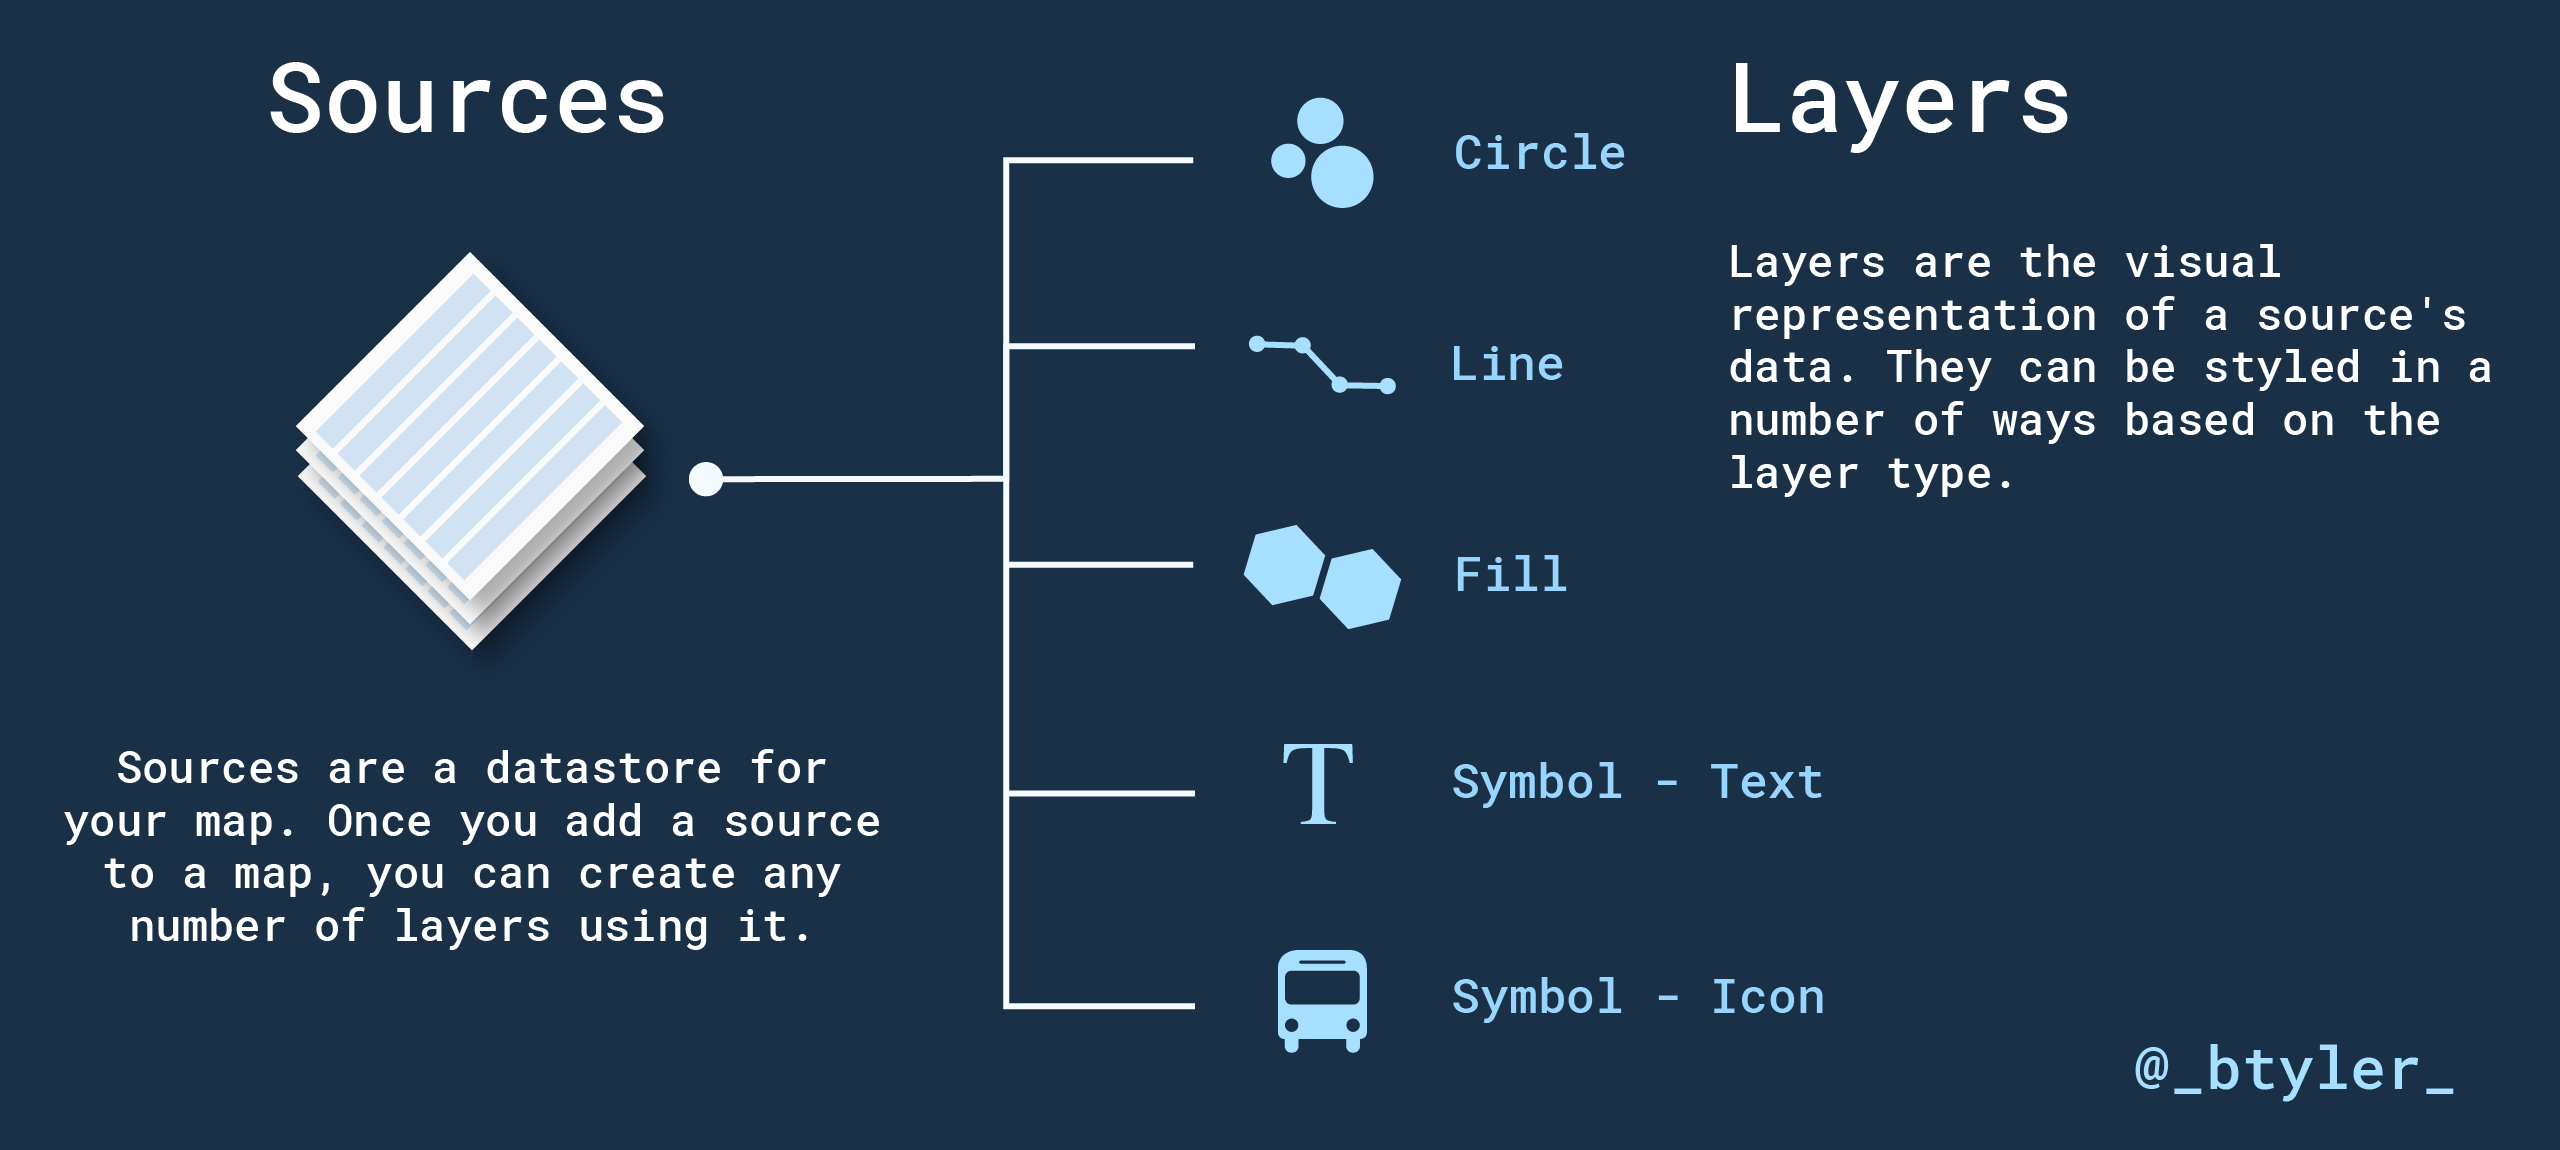 Sources and Layers Infographic